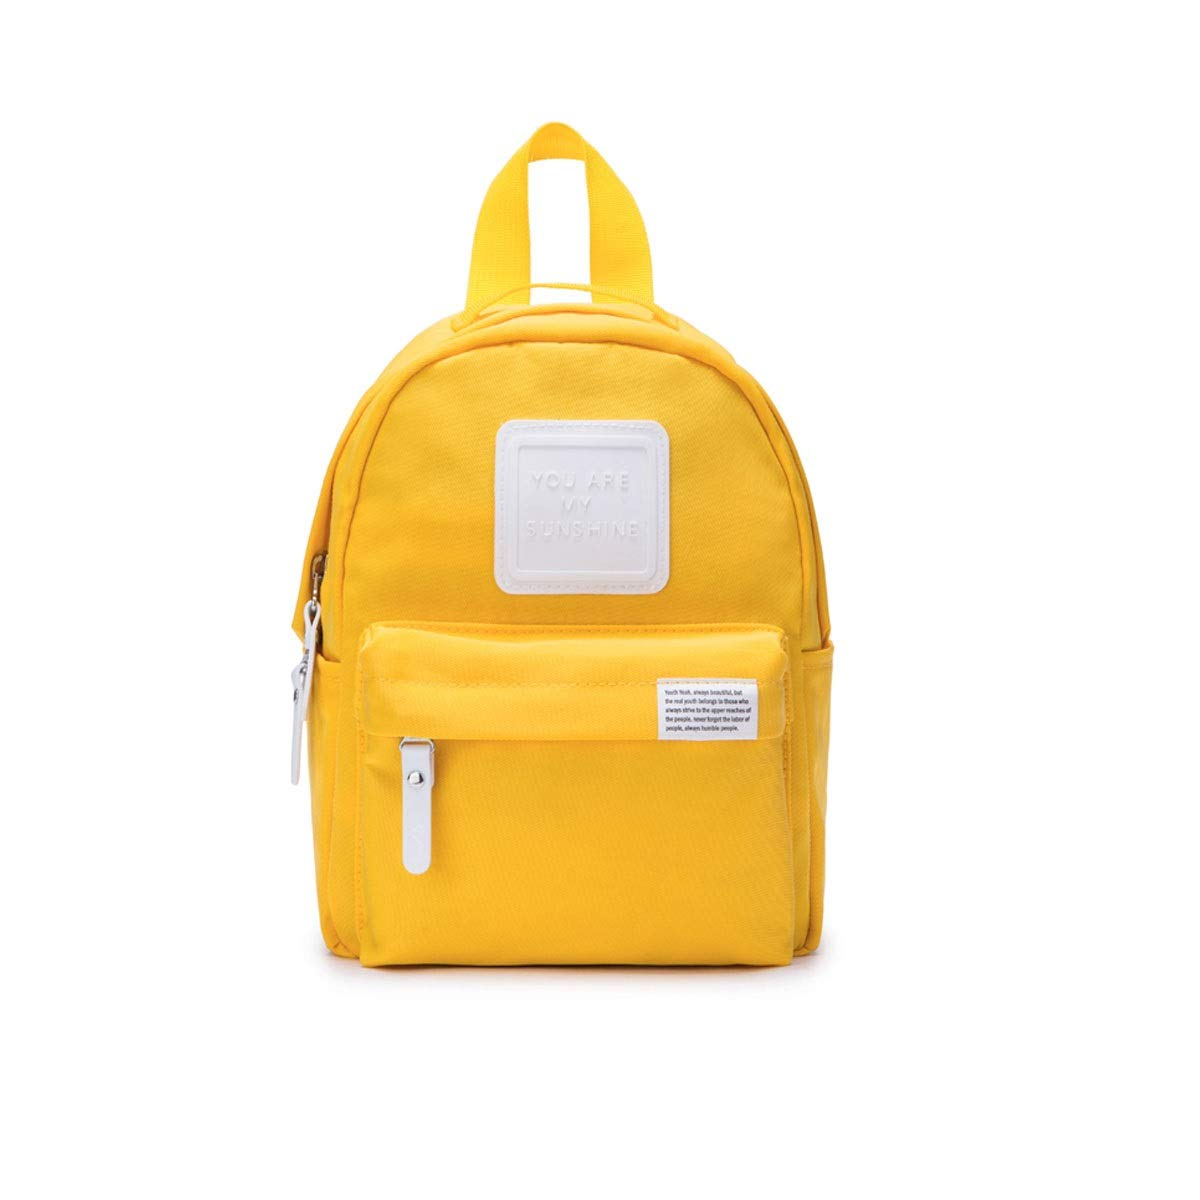 TONGBOSHI Backpack Female College Student Leisure Travel Bag, Small Fresh Backpack Campus Bag Male Fashion Trend (Color : Yellow)